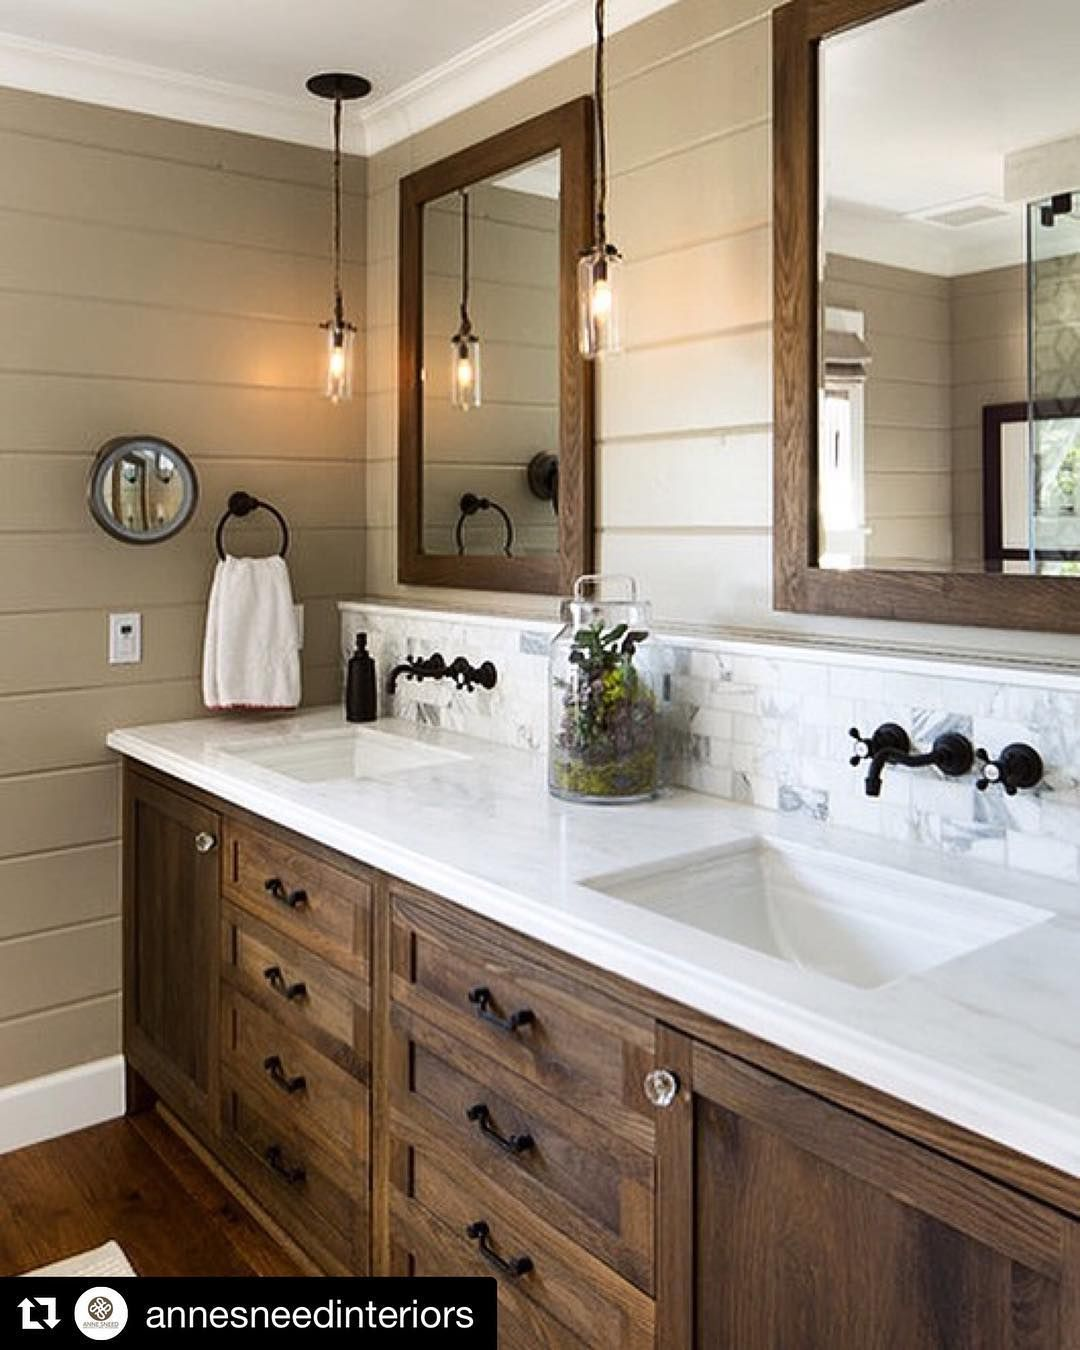 This Bathroominspo Photo From Houzz Has Been The Inspiration For